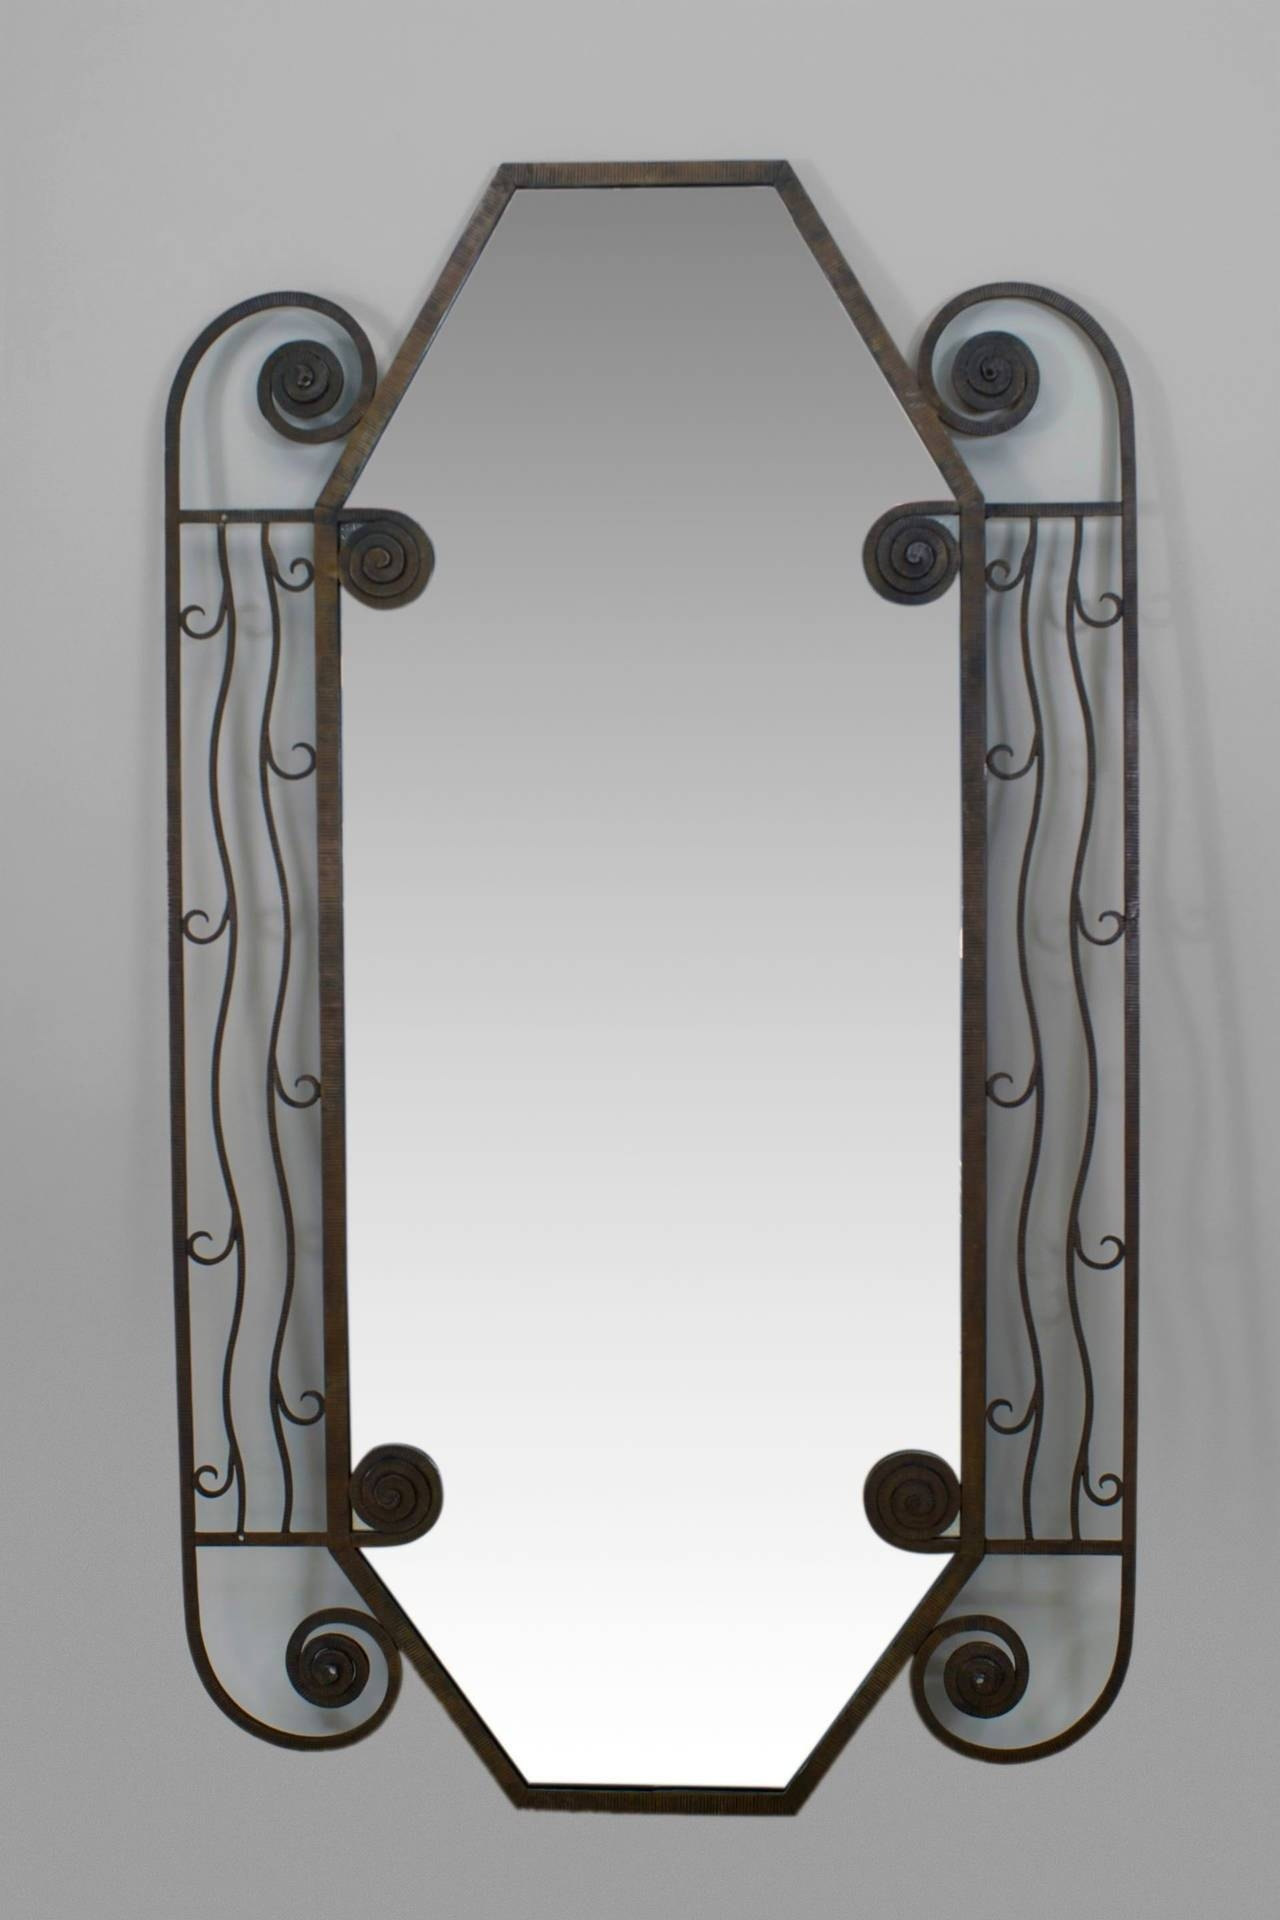 1930's French Art Deco Iron Wall Mirror For Sale At 1Stdibs pertaining to French Wall Mirrors (Image 1 of 25)